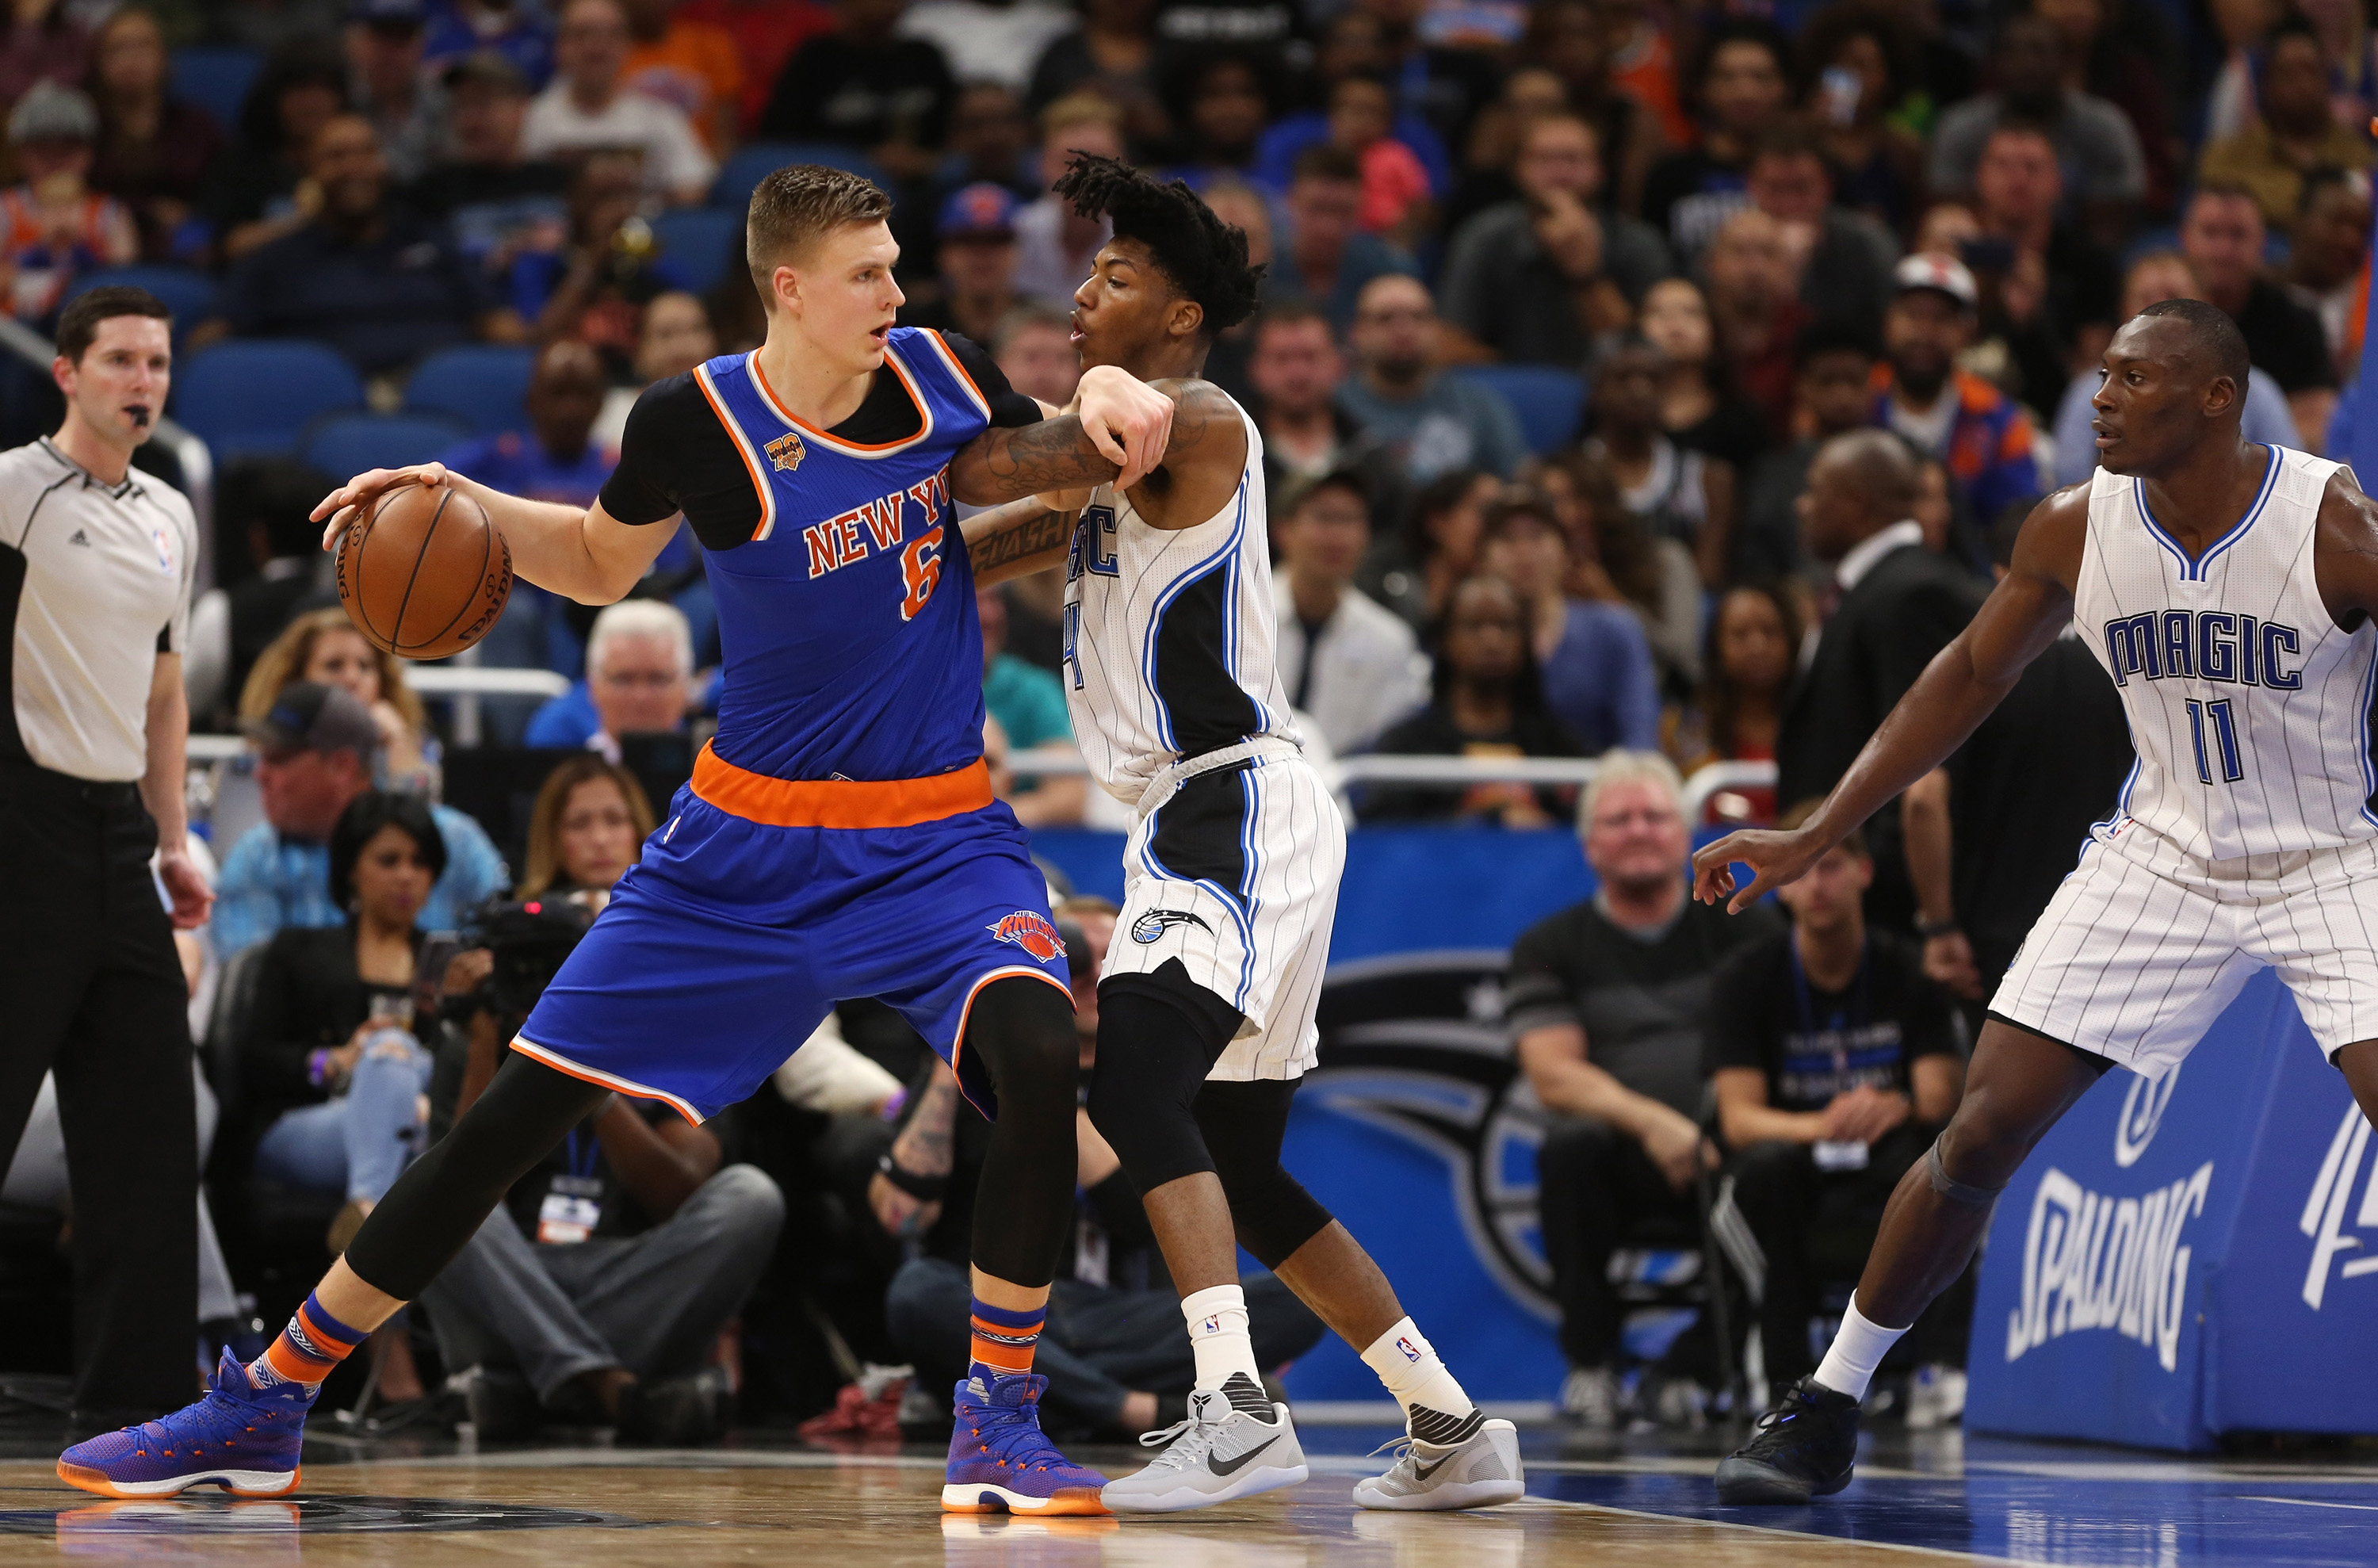 March 6, 2017 - Orlando, FL, USA - New York Knicks forward Kristaps Porzingis (6) is guarded by Orlando Magic guard Elfrid Payton (4) on Monday, March 6, 2017 at Amway Center in Orlando, Fla. (Credit Image: © Ricardo Ramirez Buxeda/TNS via ZUMA Wire)